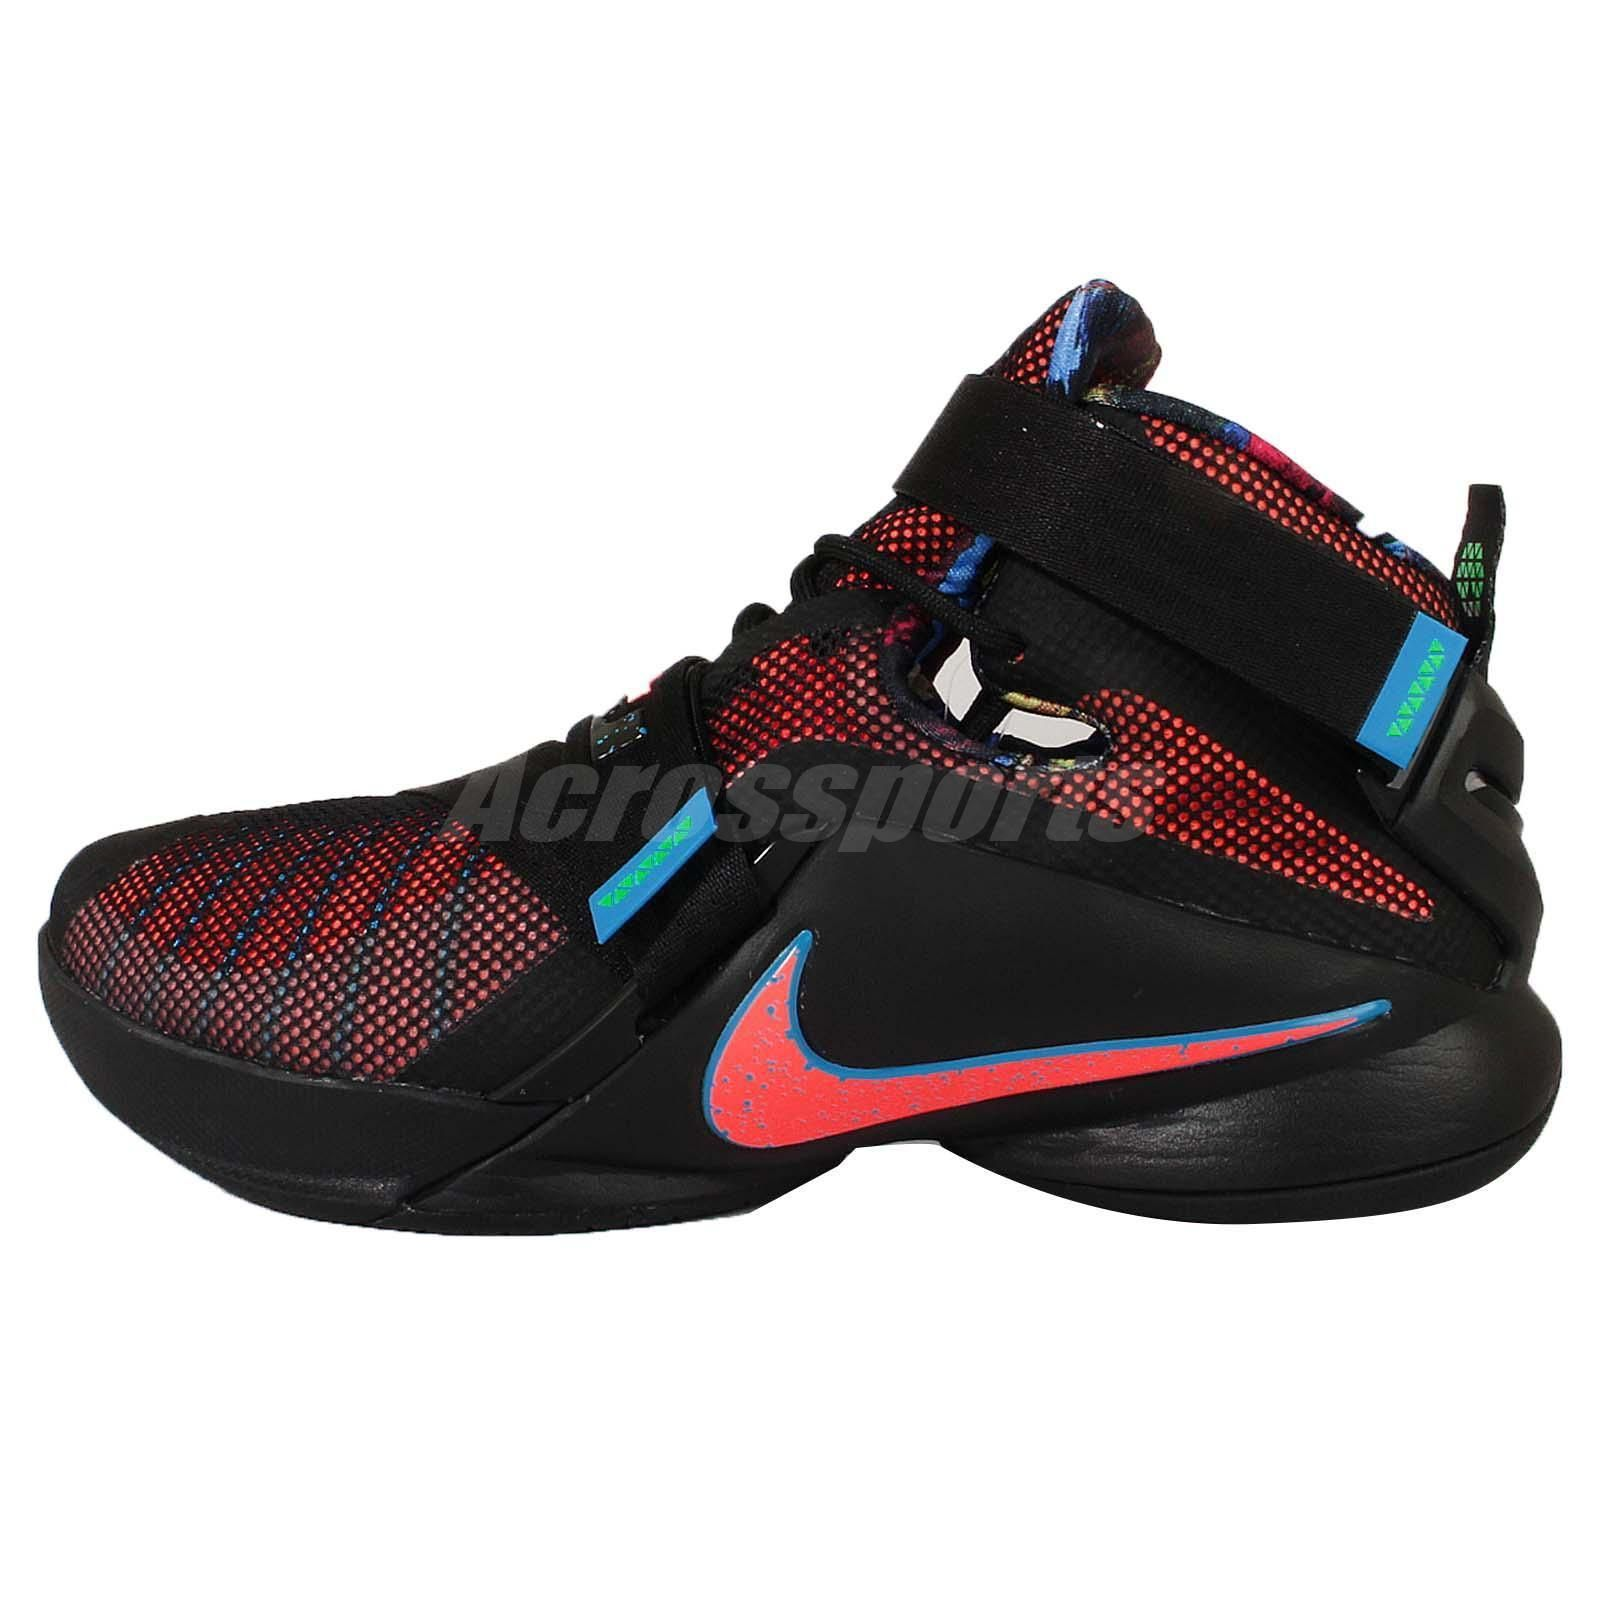 fadc1f47fd3 Nike Lebron Soldier IX 9 PRM EP King Lebron James Mens Basketball Shoes  Pick 1…